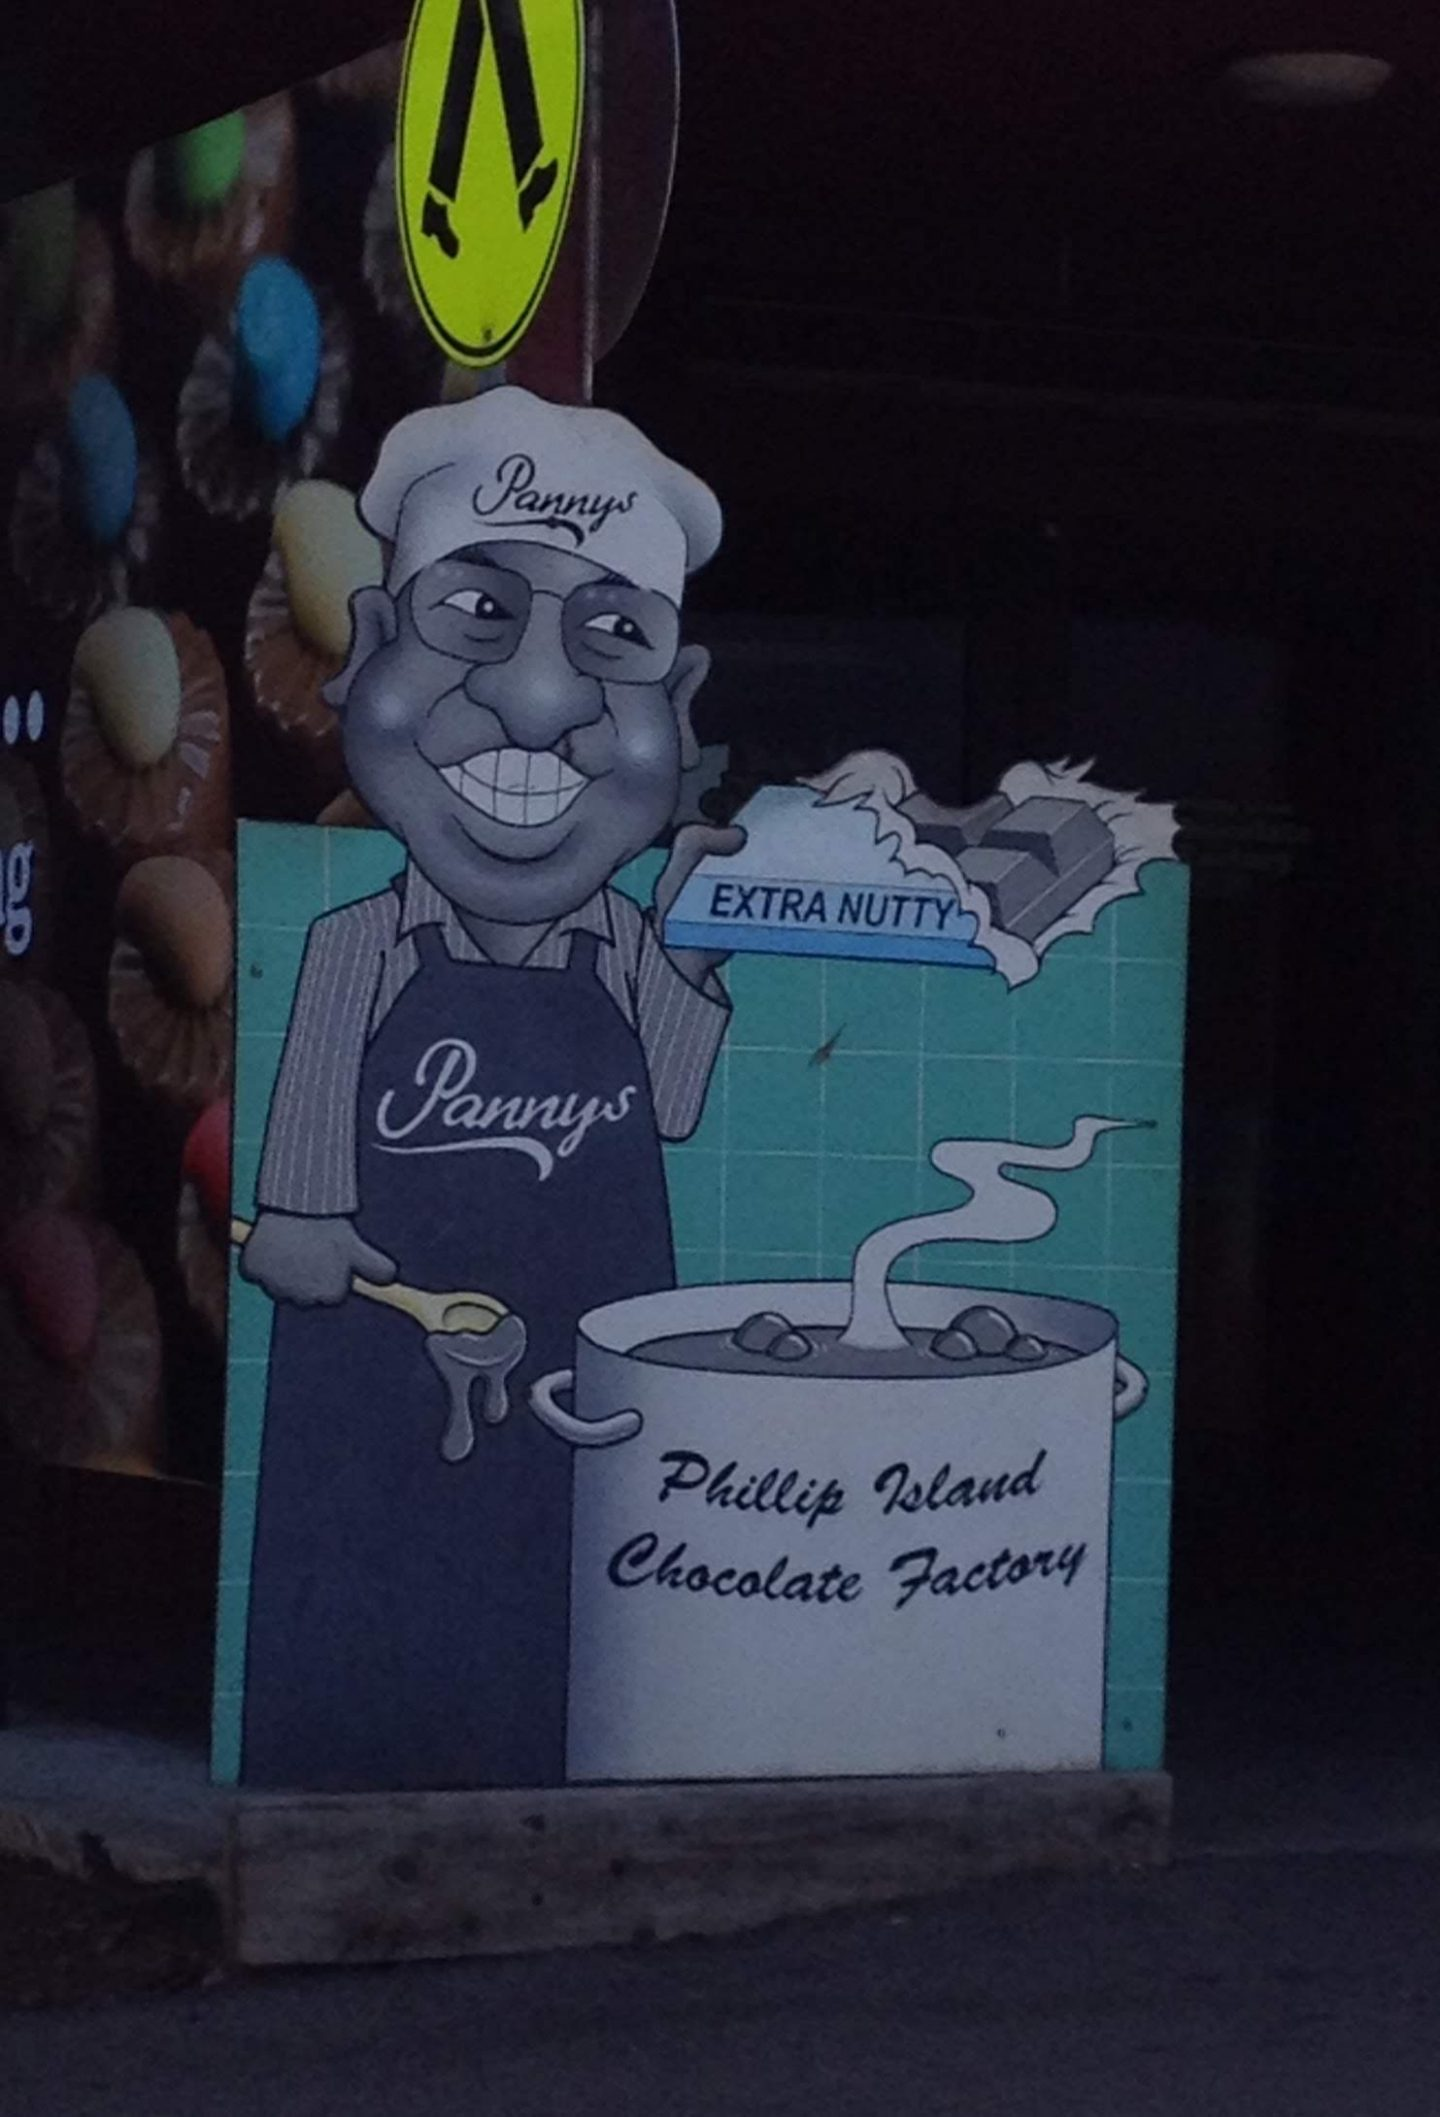 Panny's Chocolate Factory